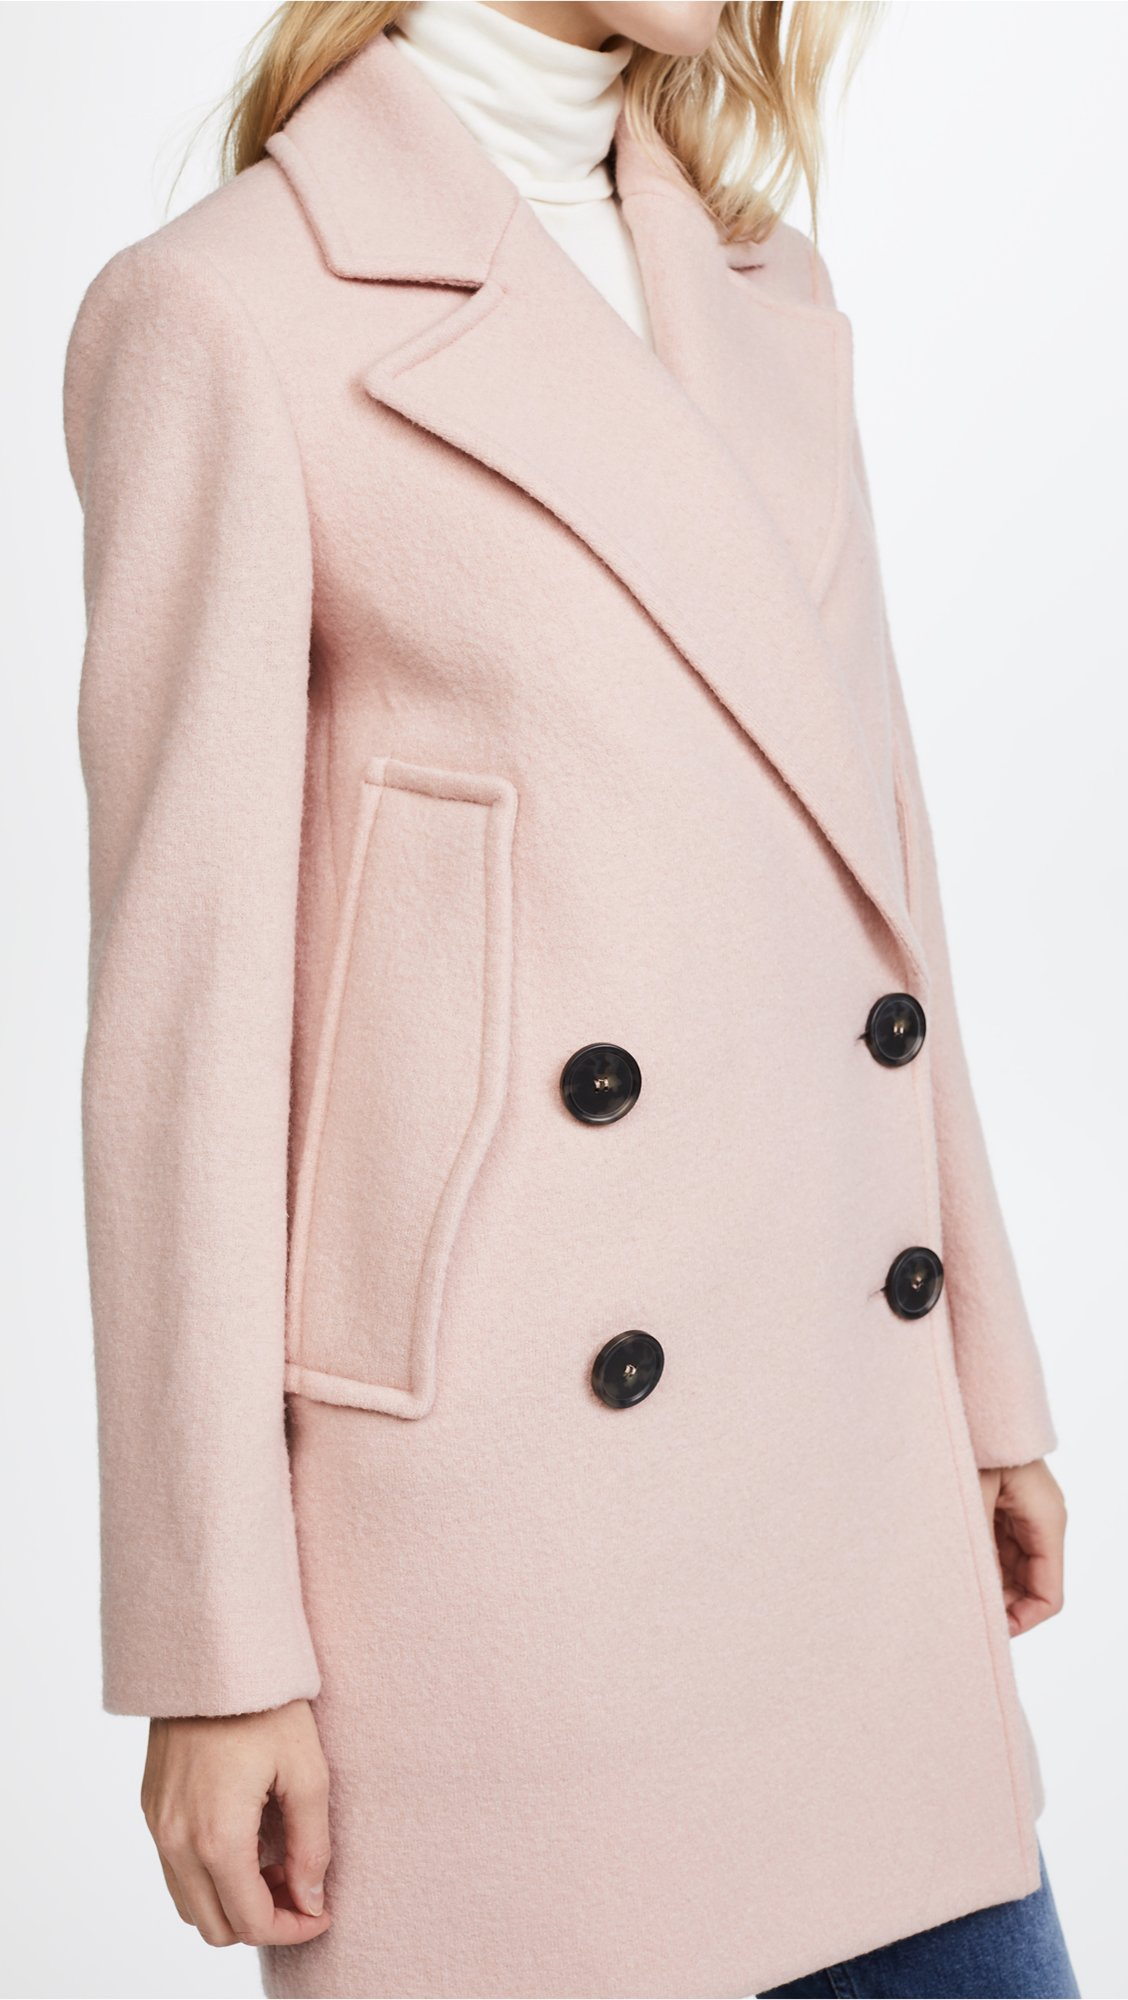 Theory Women's Cape Coat, Chalk Pink, S by Theory (Image #6)